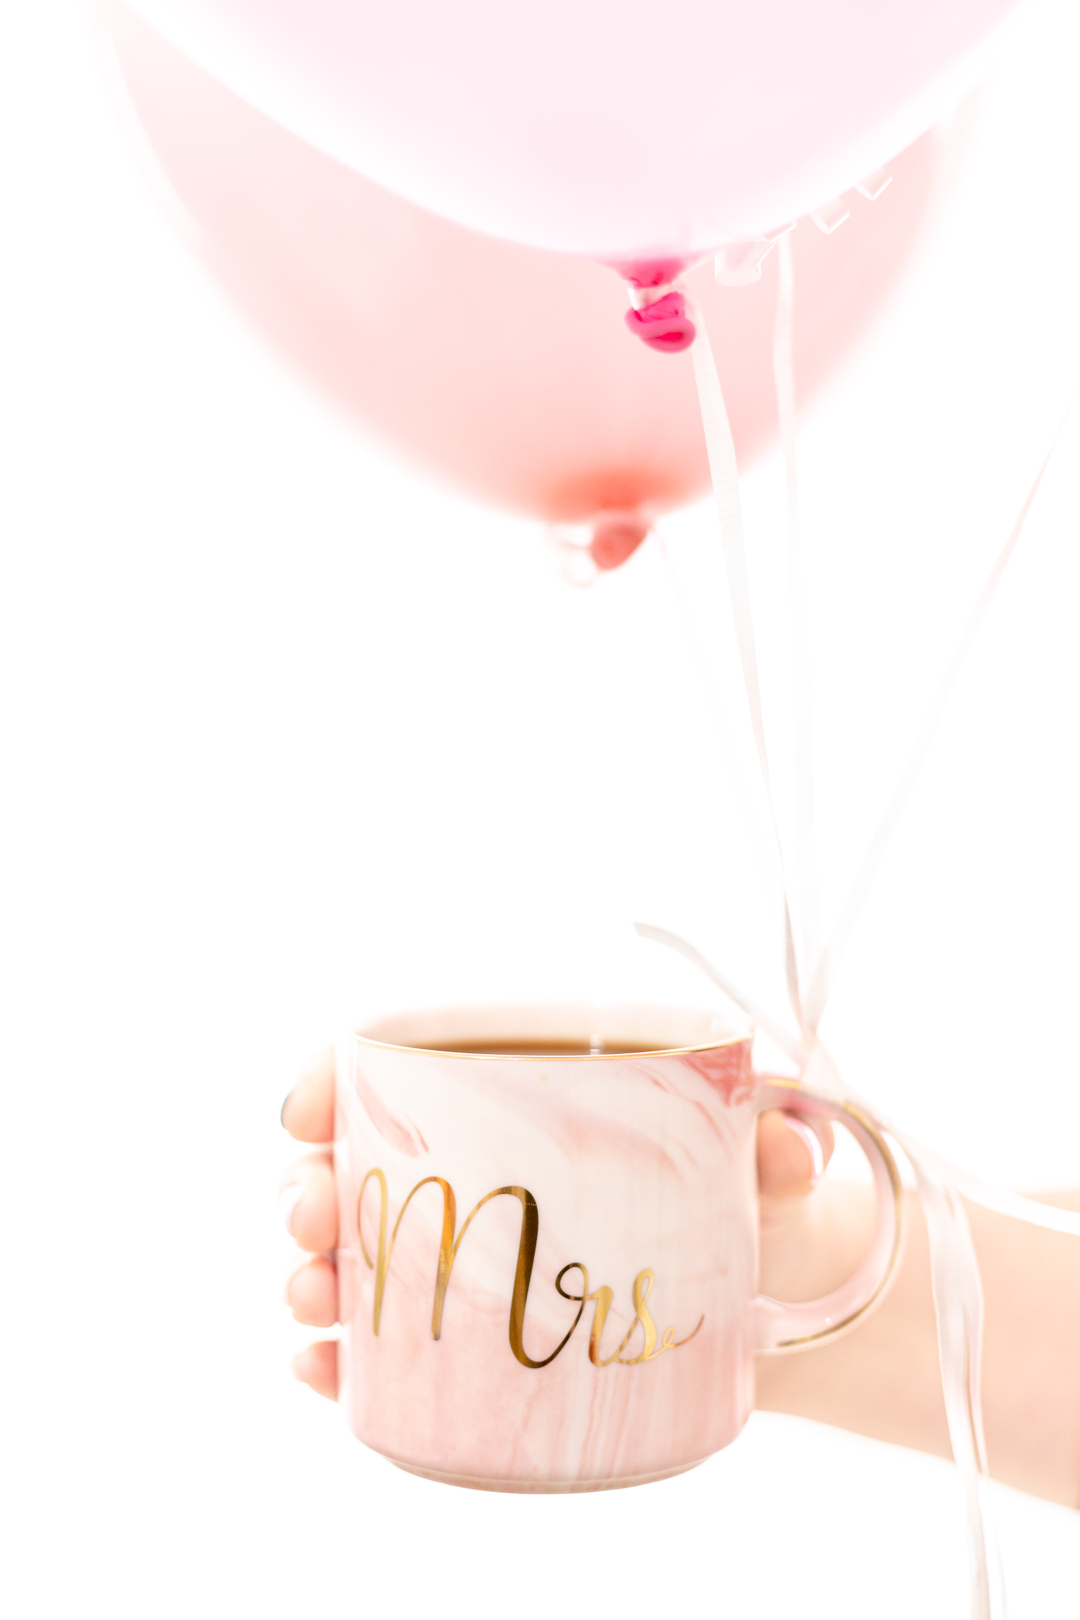 Mug of coffee with balloons tied to it for a surprise